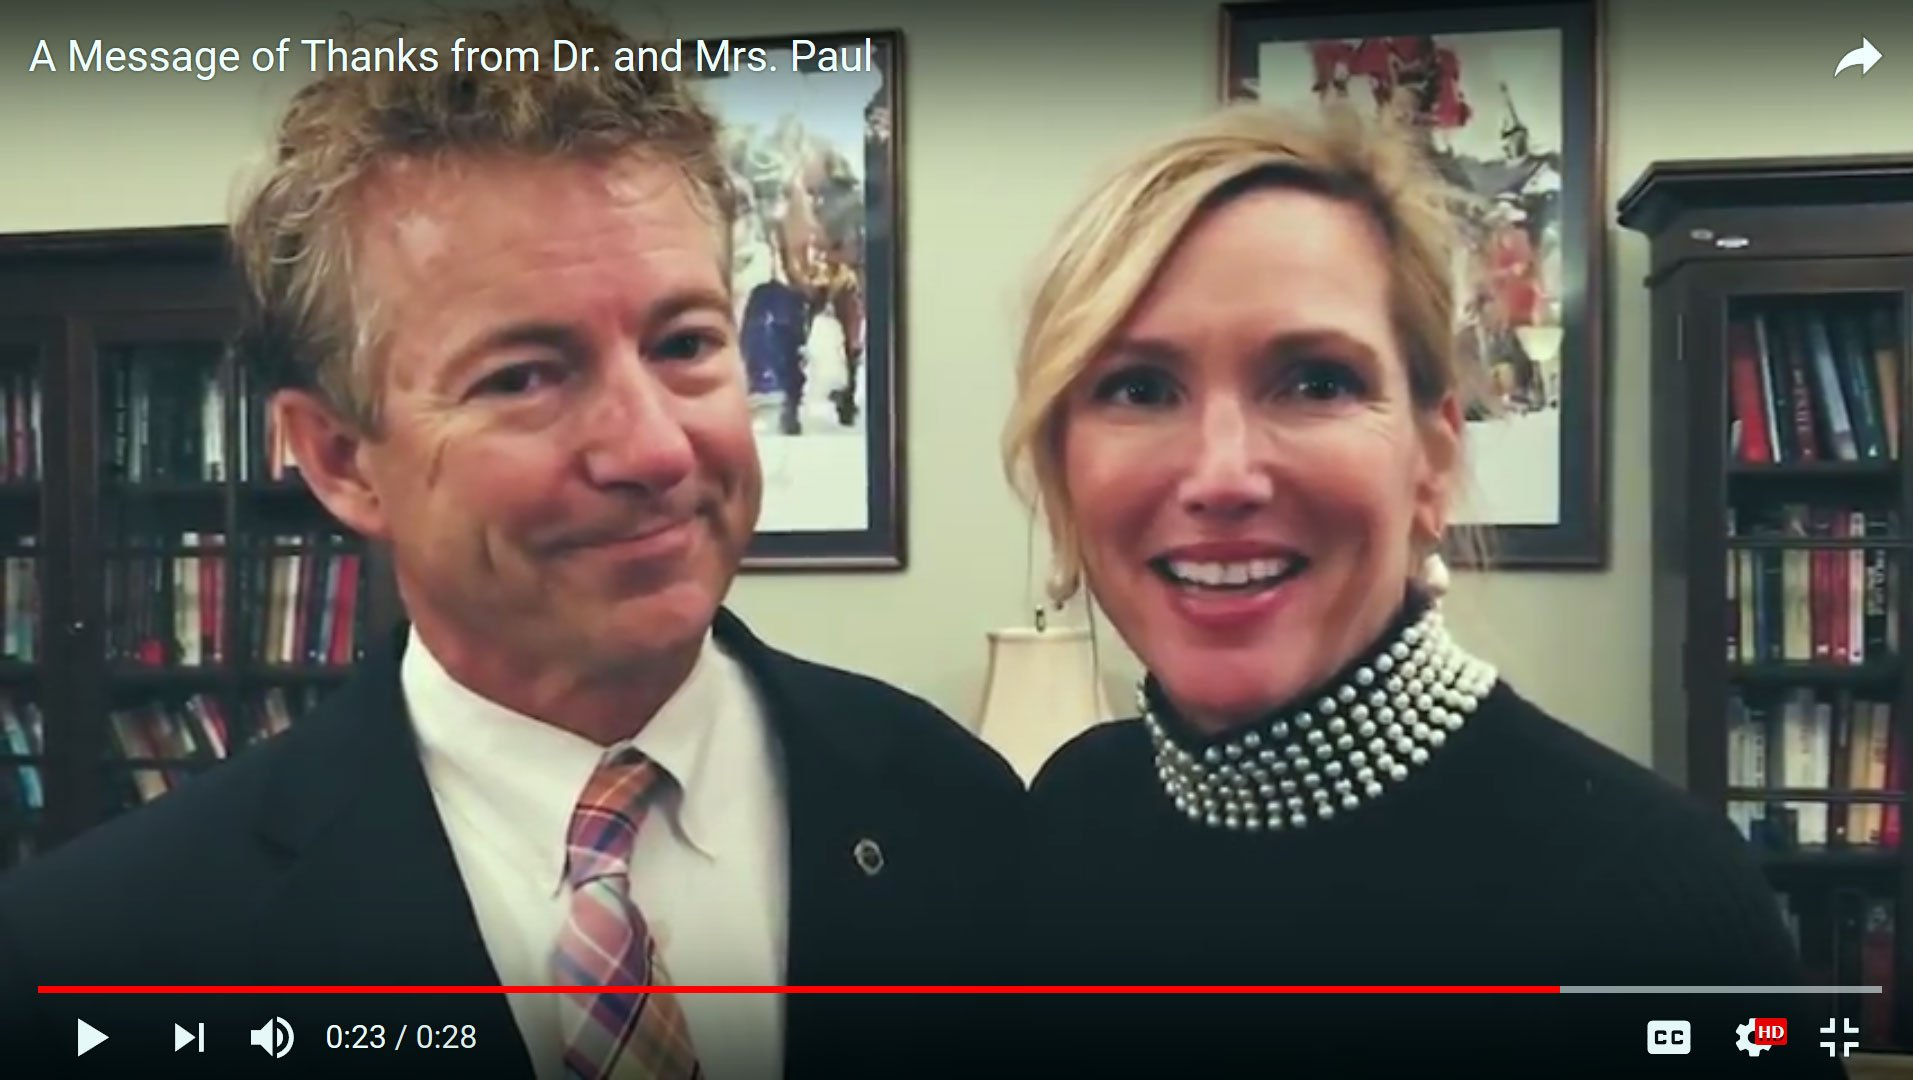 In a video posted on Nov. 17, 2017, Rand Paul and his wife, Kelley Paul, delivered a holiday message to Kentucky residents.